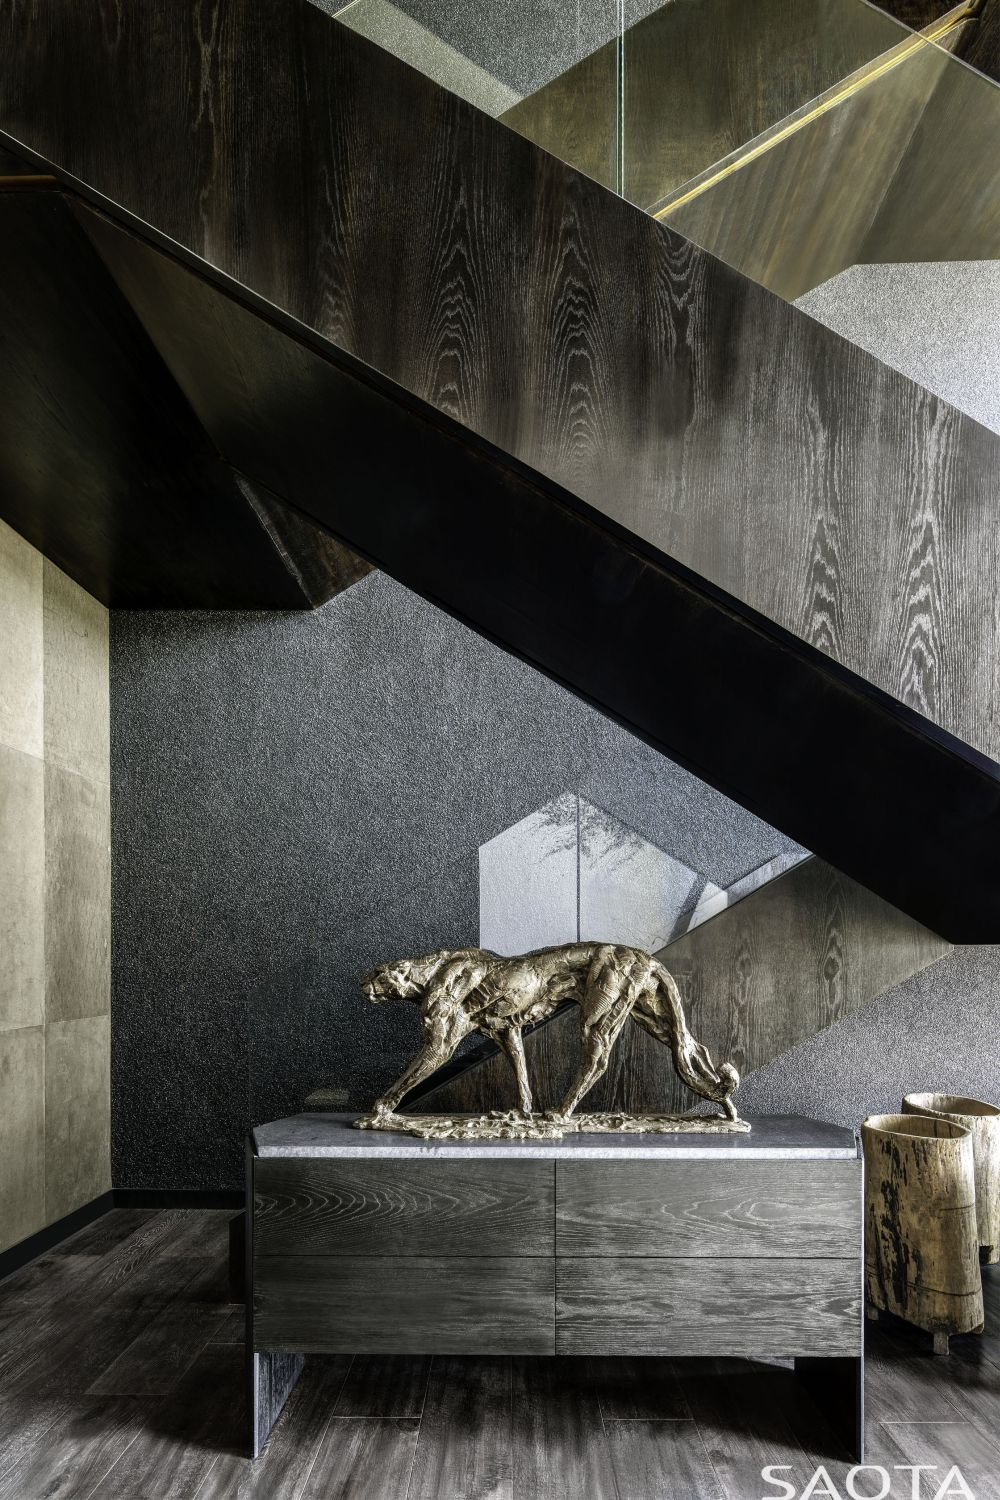 The connection between all the floors within the house is ensured by a simple and elegant staircase